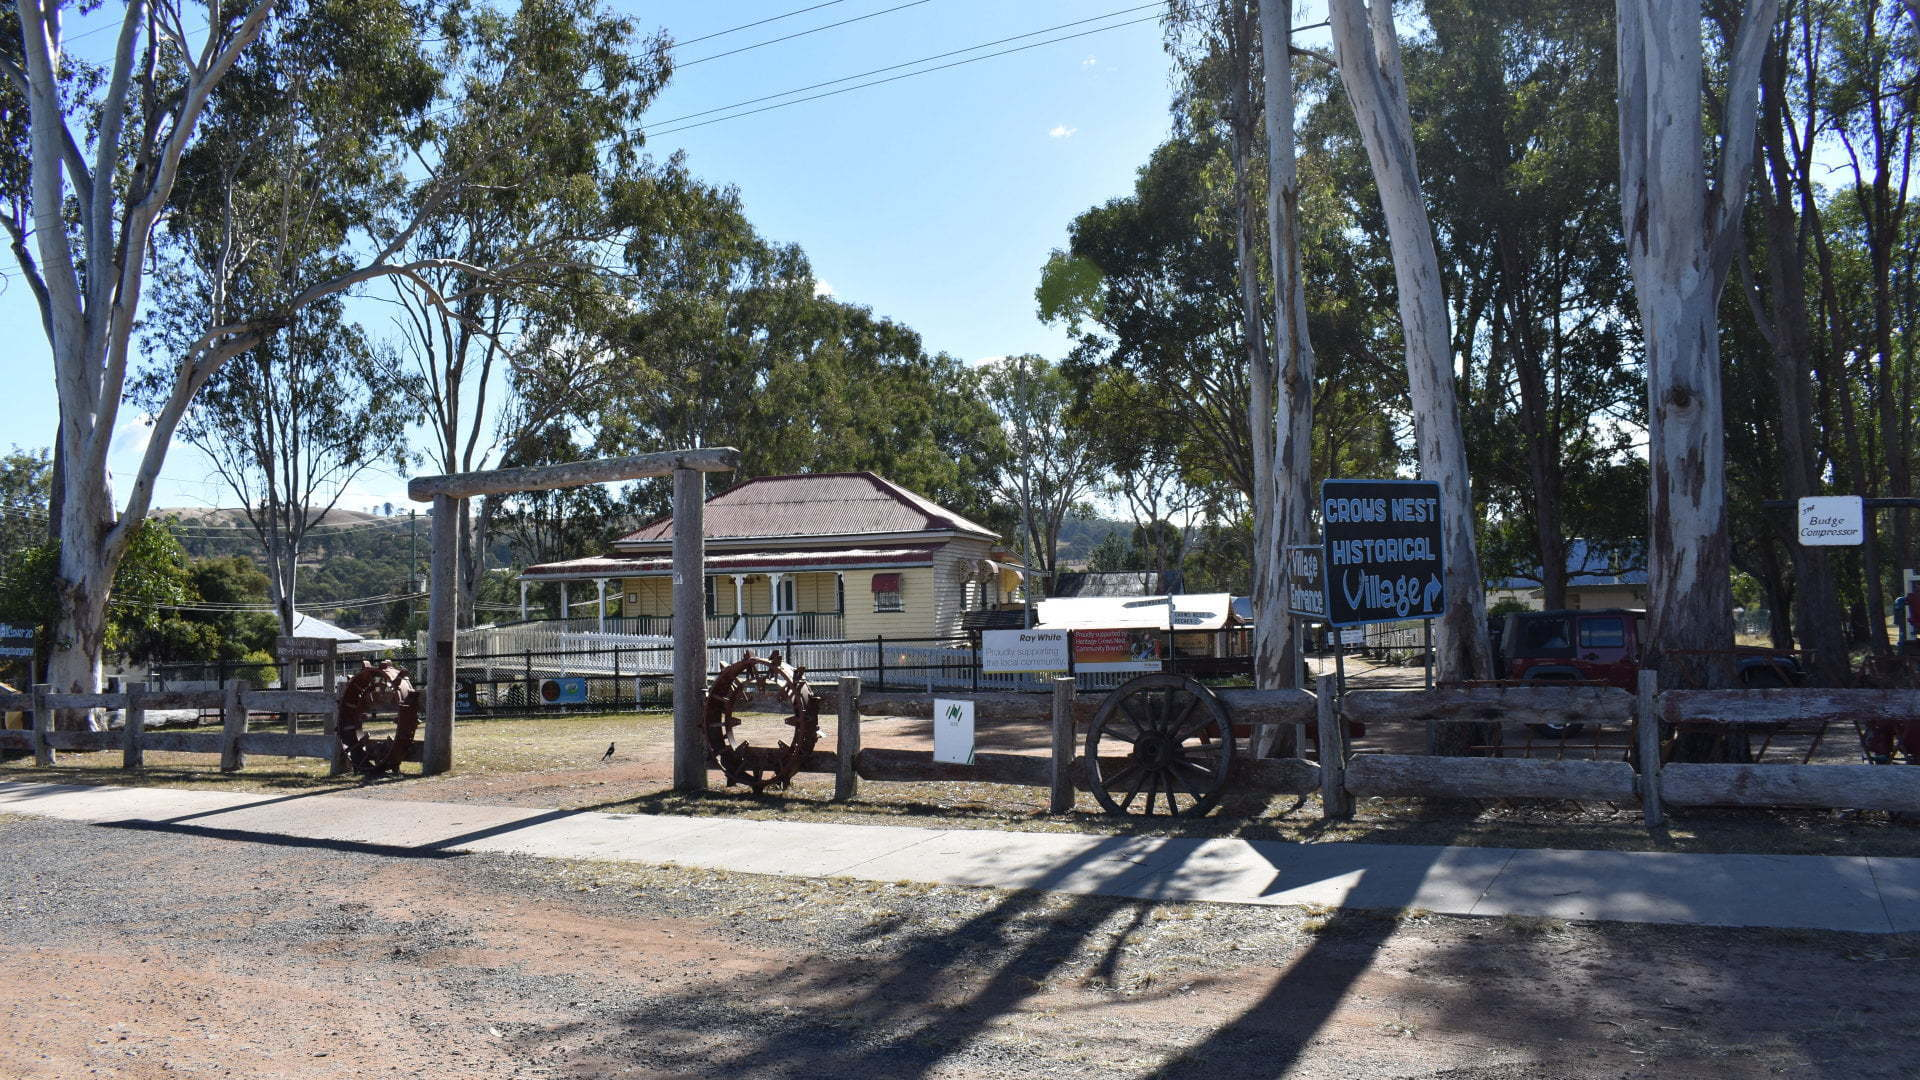 Front of the Crows Nest Historical Village. The village has over 20 buildings, including Carbethon House homestead, Ray White Auctioneer building, and lots of local historical memorabilia